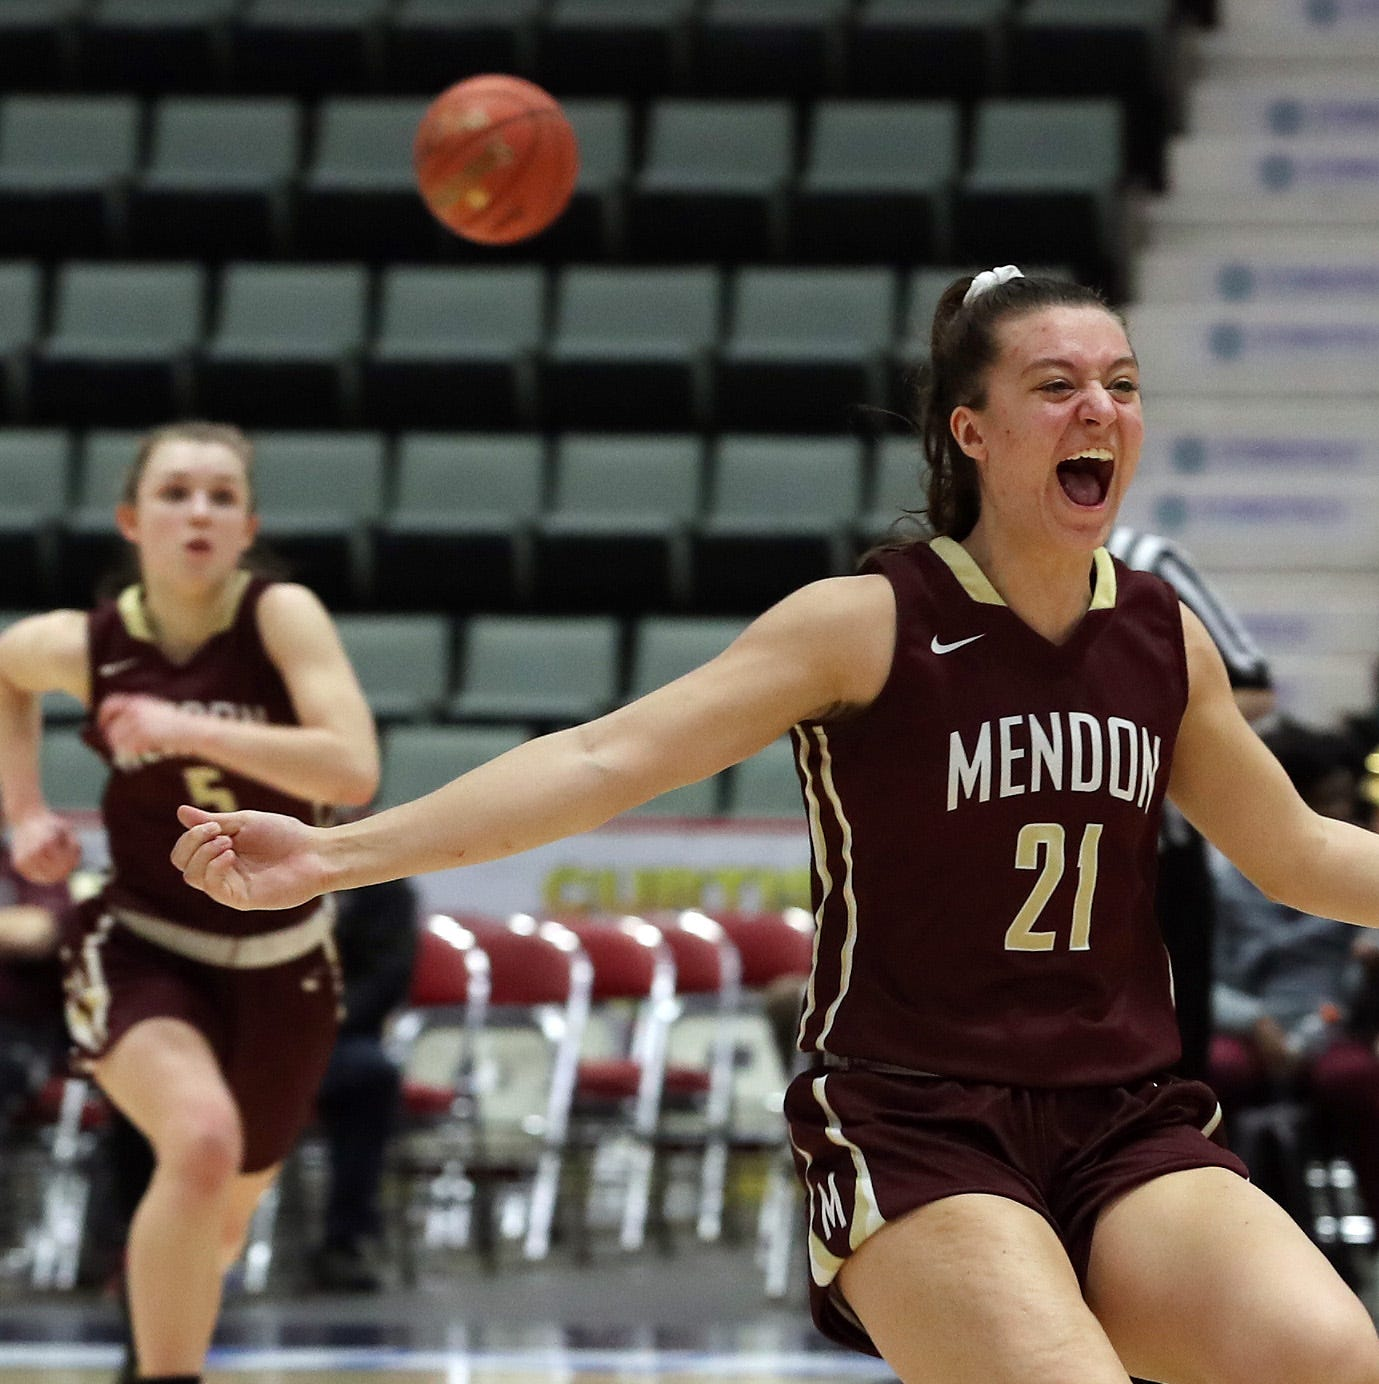 Pittsford Mendon girls rally to win Federation Tournament championship in overtime